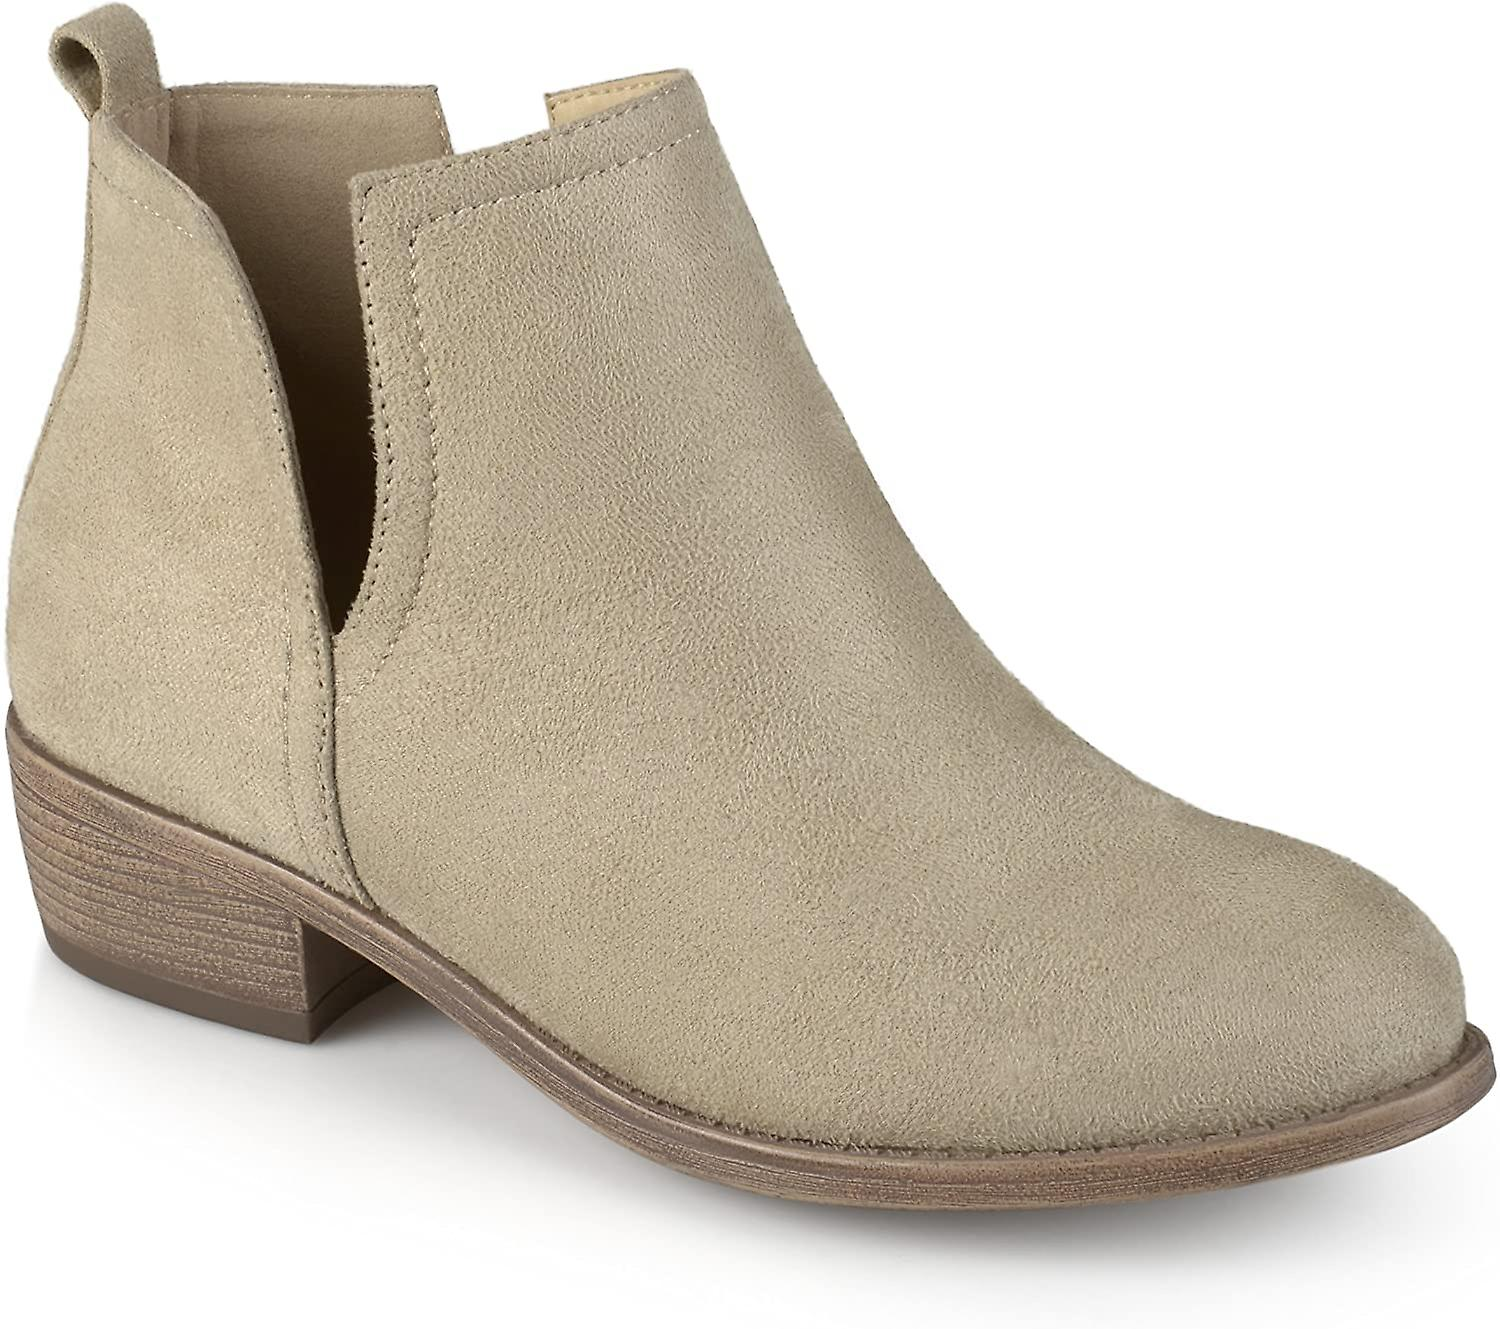 Journee Collection Womens Round Toe Faux Suede Boots Stone, 9 Reguliere US  qoVzsc